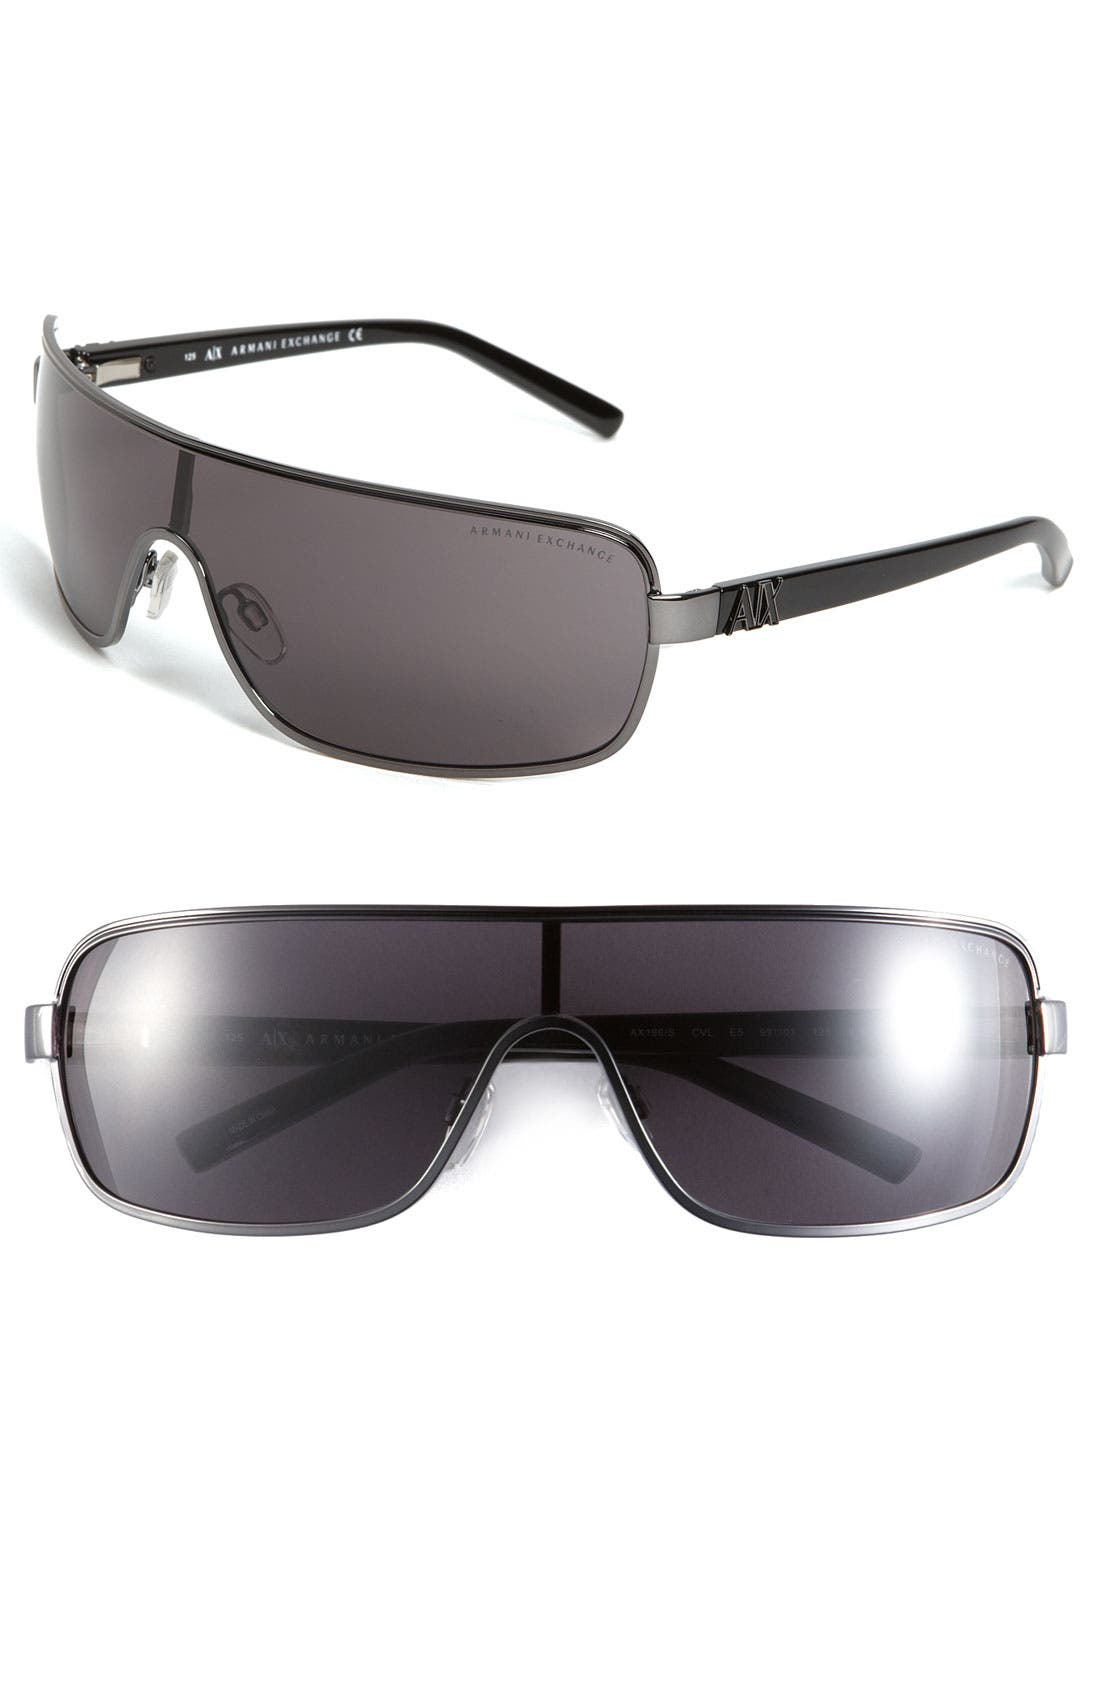 Alternate Image 1 Selected - AX Armani Exchange Shield Sunglasses